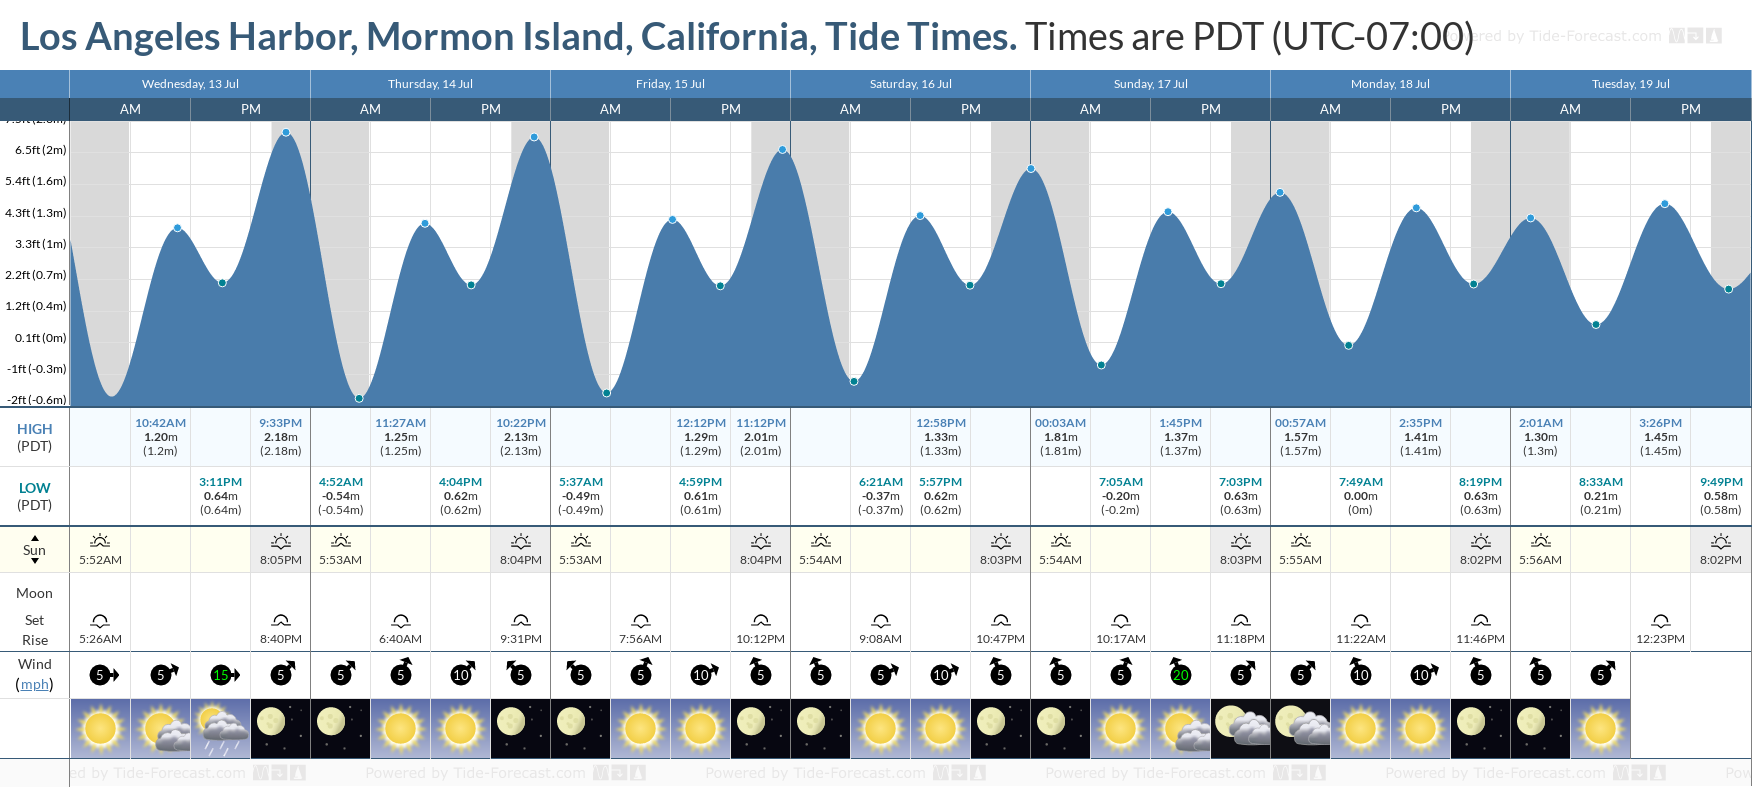 Los Angeles Harbor, Mormon Island, California Tide Chart including high and low tide tide times for the next 7 days